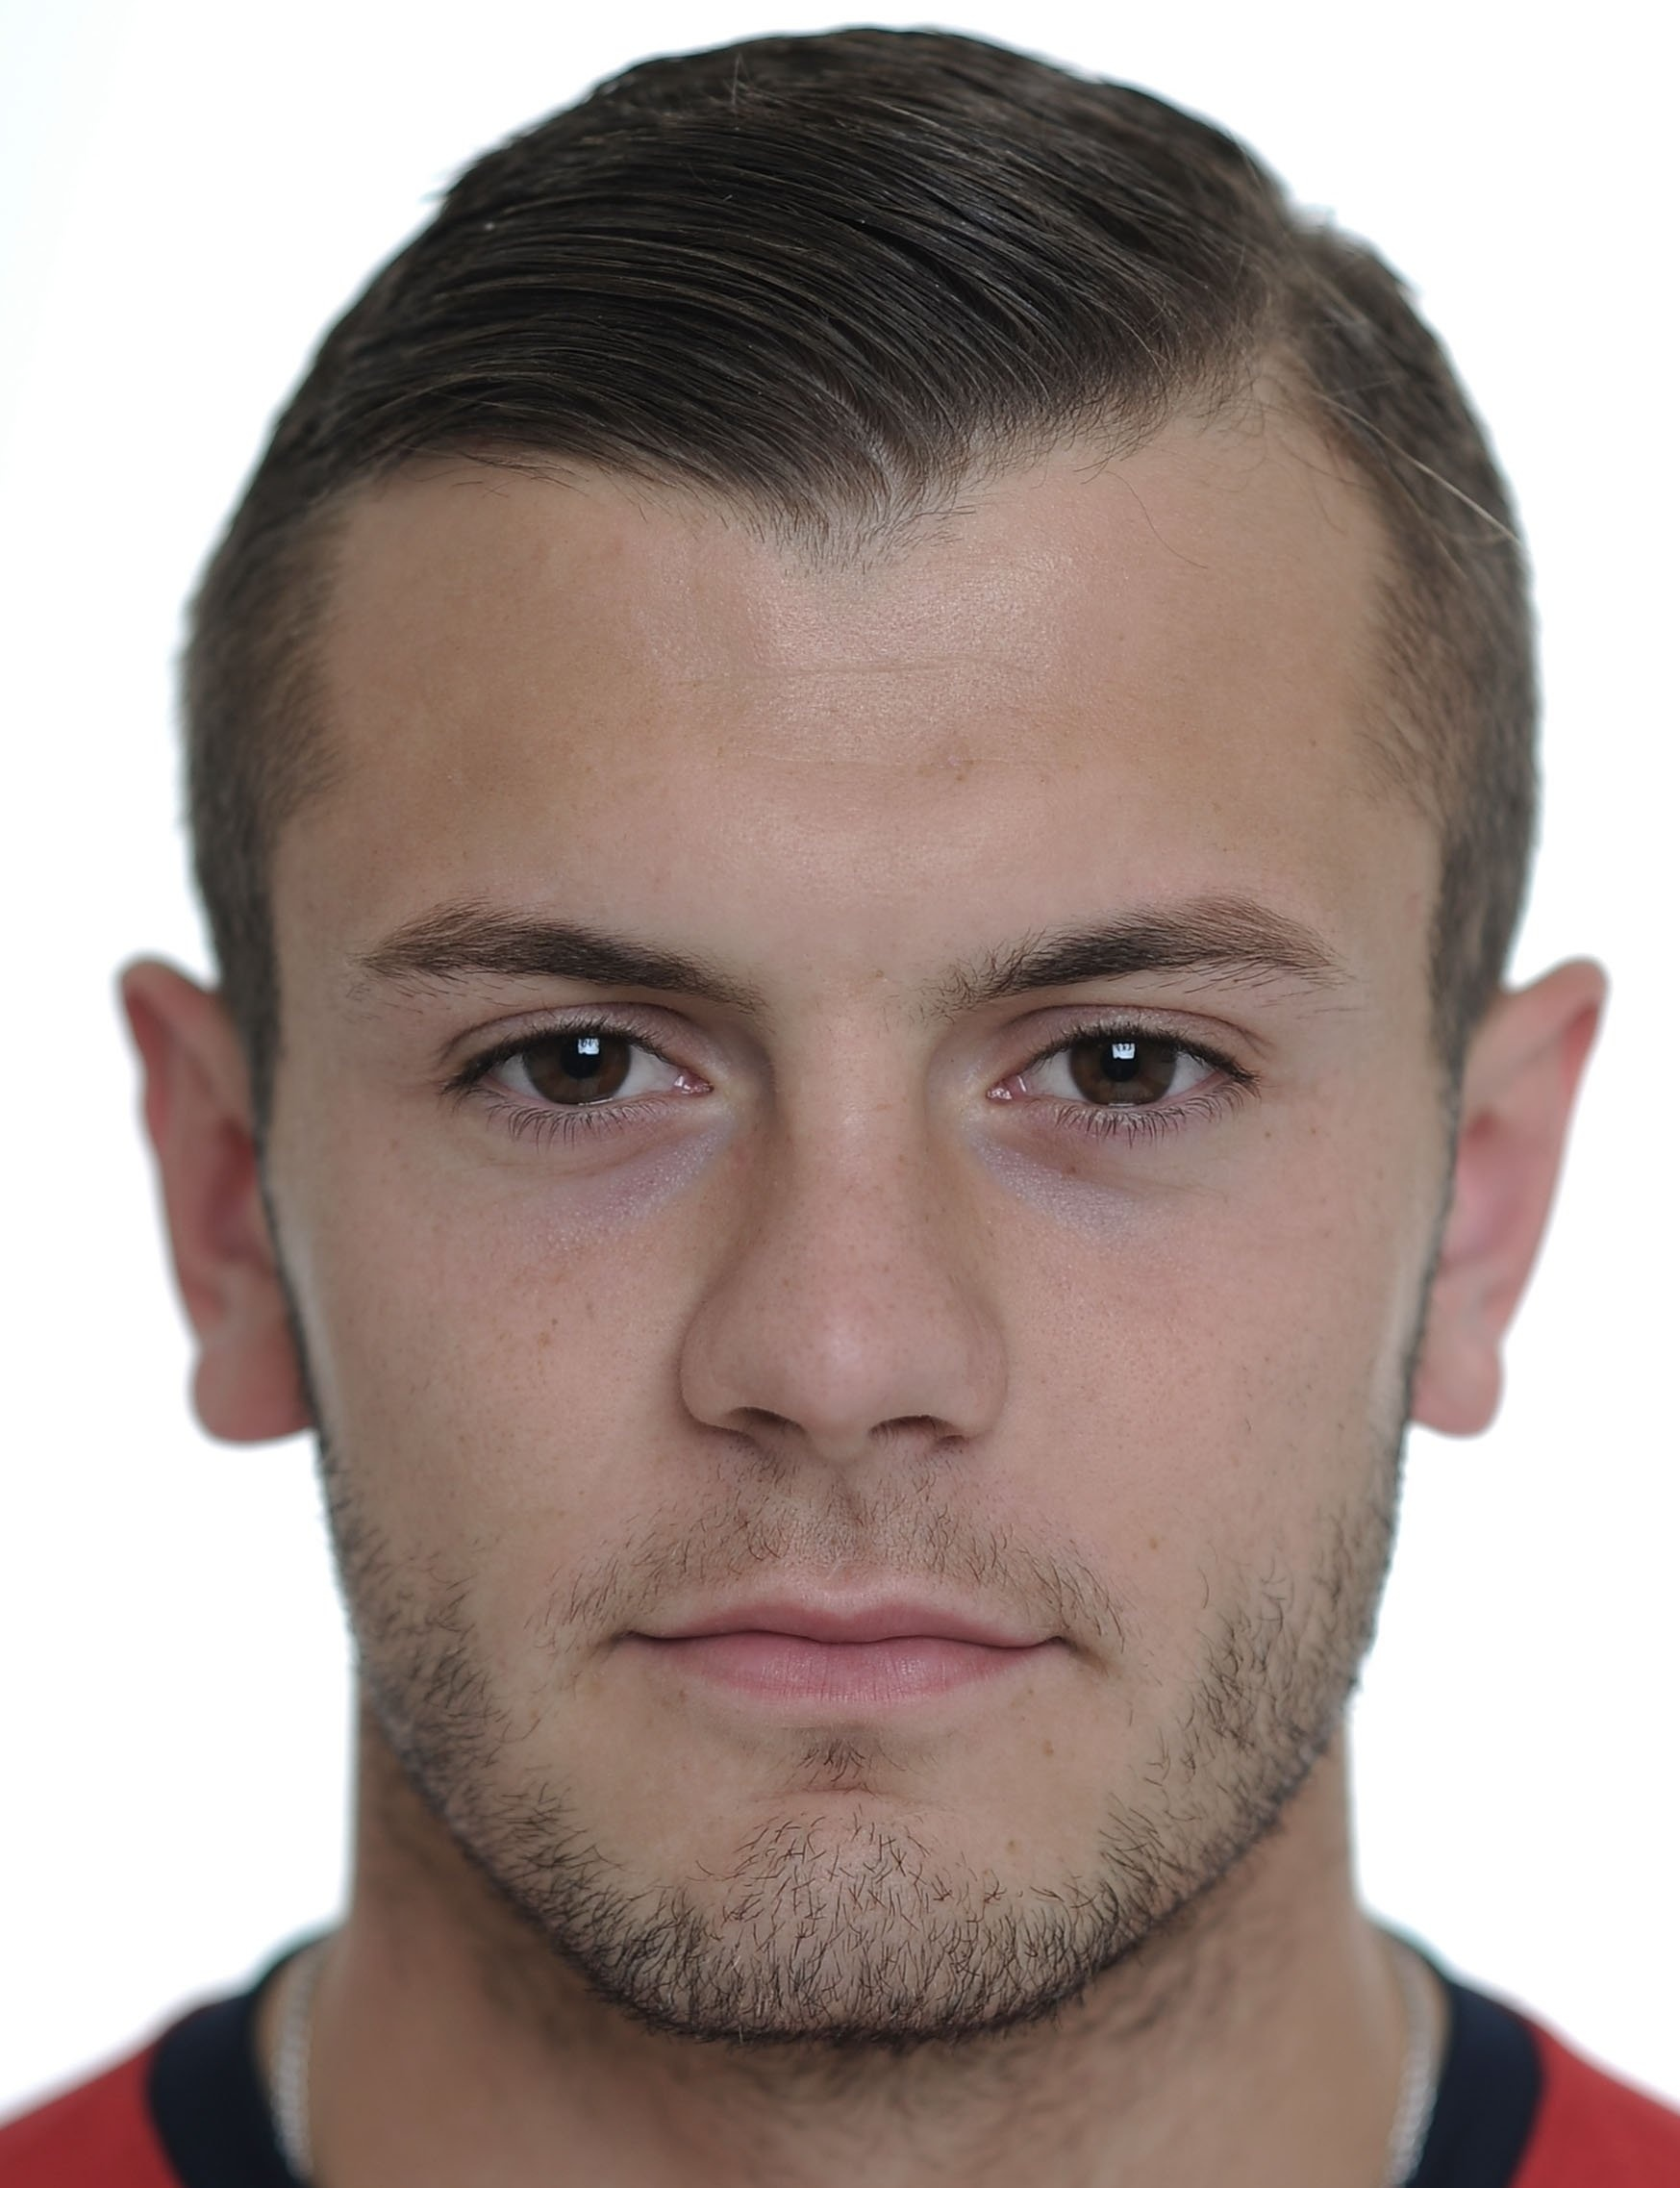 ¿Cuánto mide Jack Wilshere? - Altura - Real height 74223-1464094739